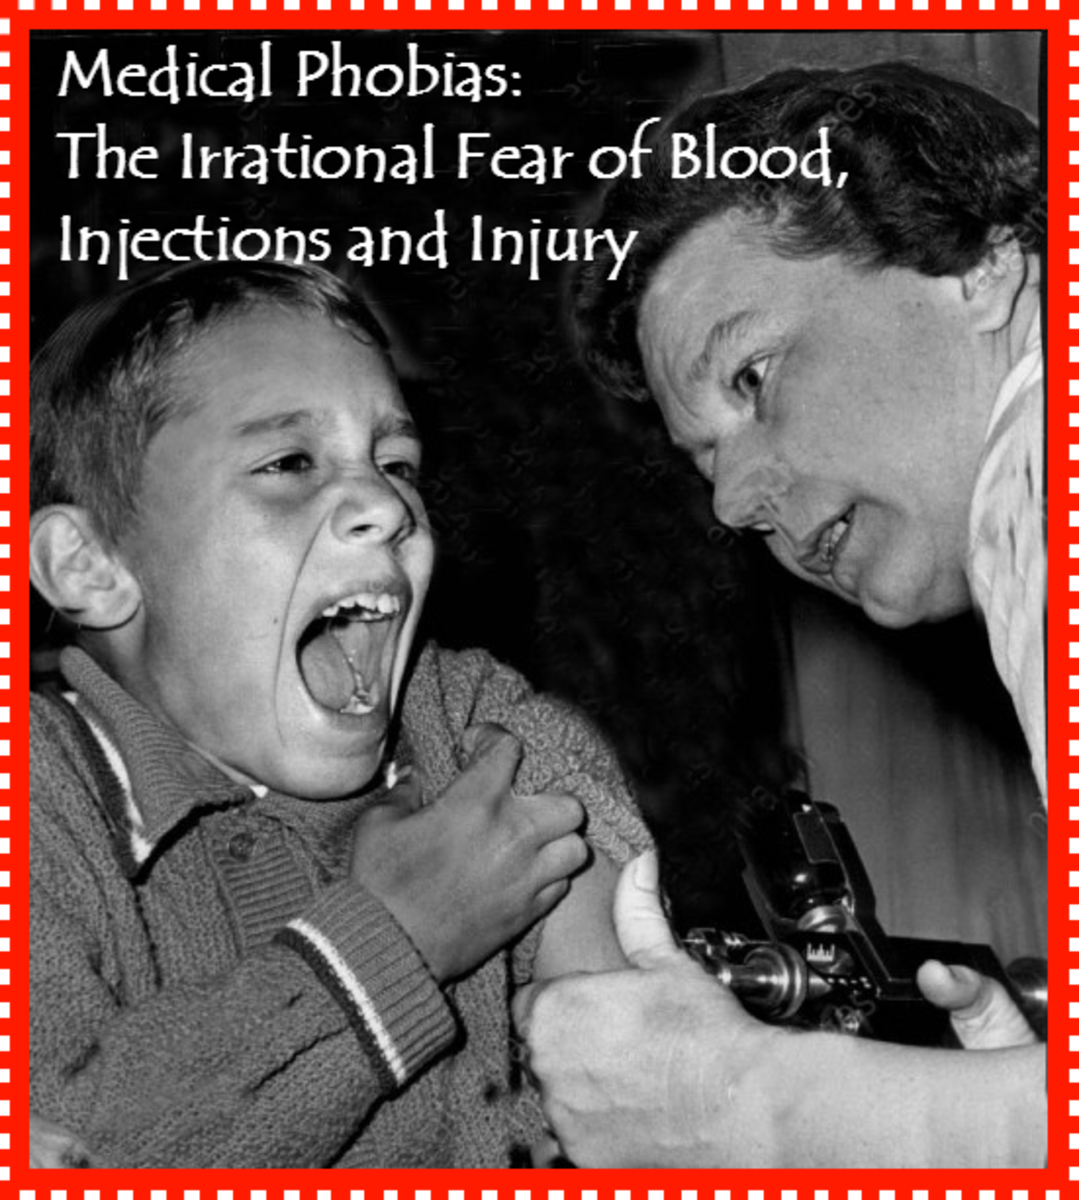 Medical Phobias:  The Irrational Fear of Blood, Injections, and Injury